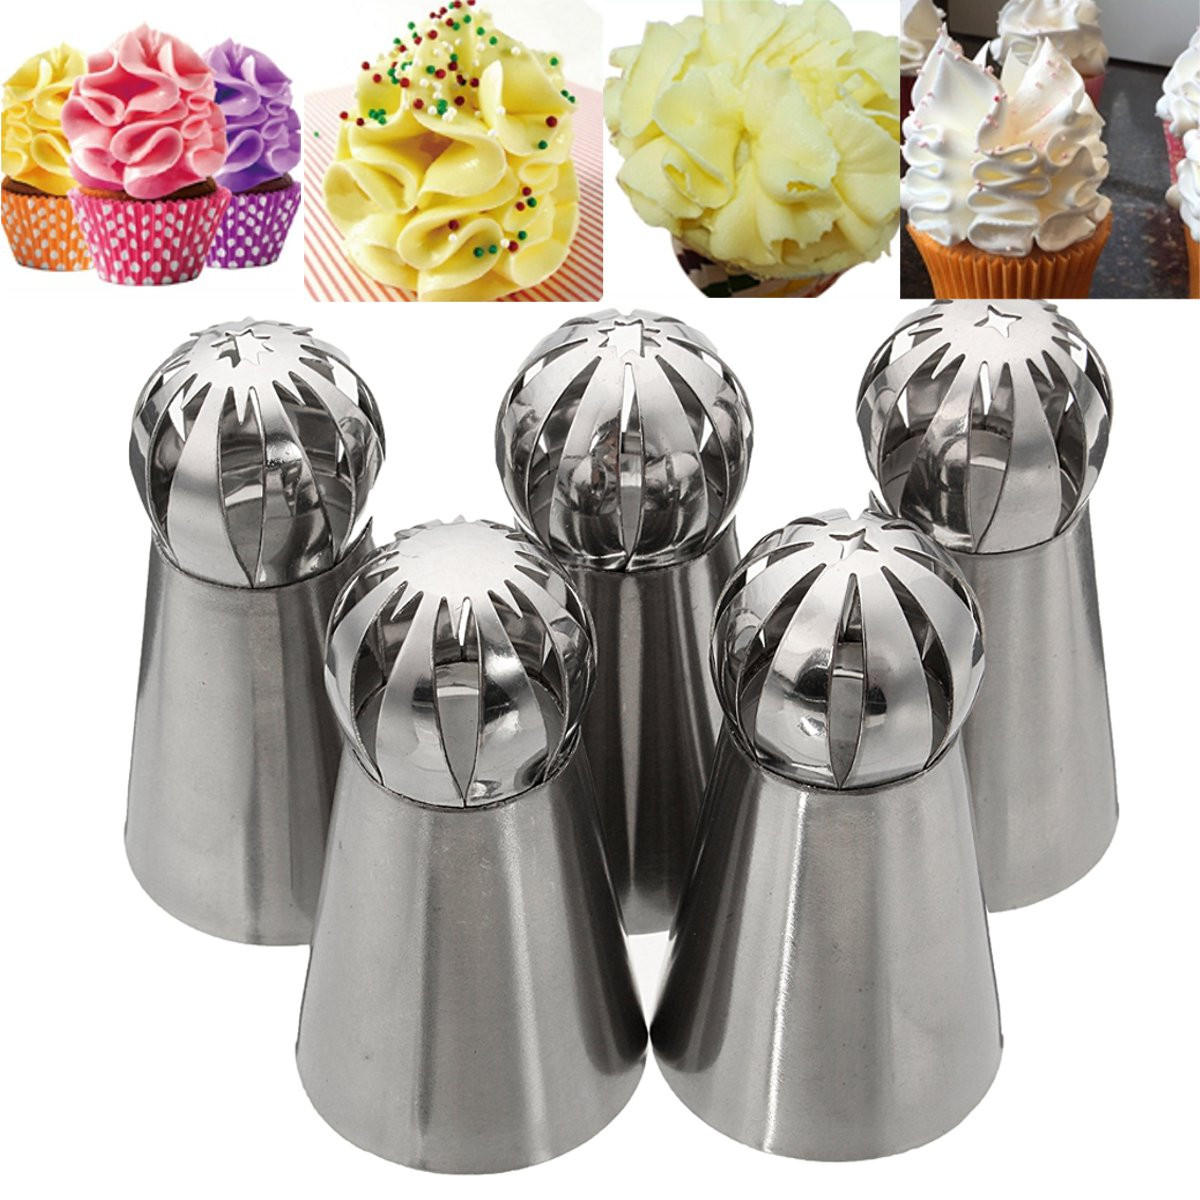 5Pcs Stainless Steel Nozzles Dual Color Lcing Piping Bag Cake Tool Cake Decoration Converter - 5